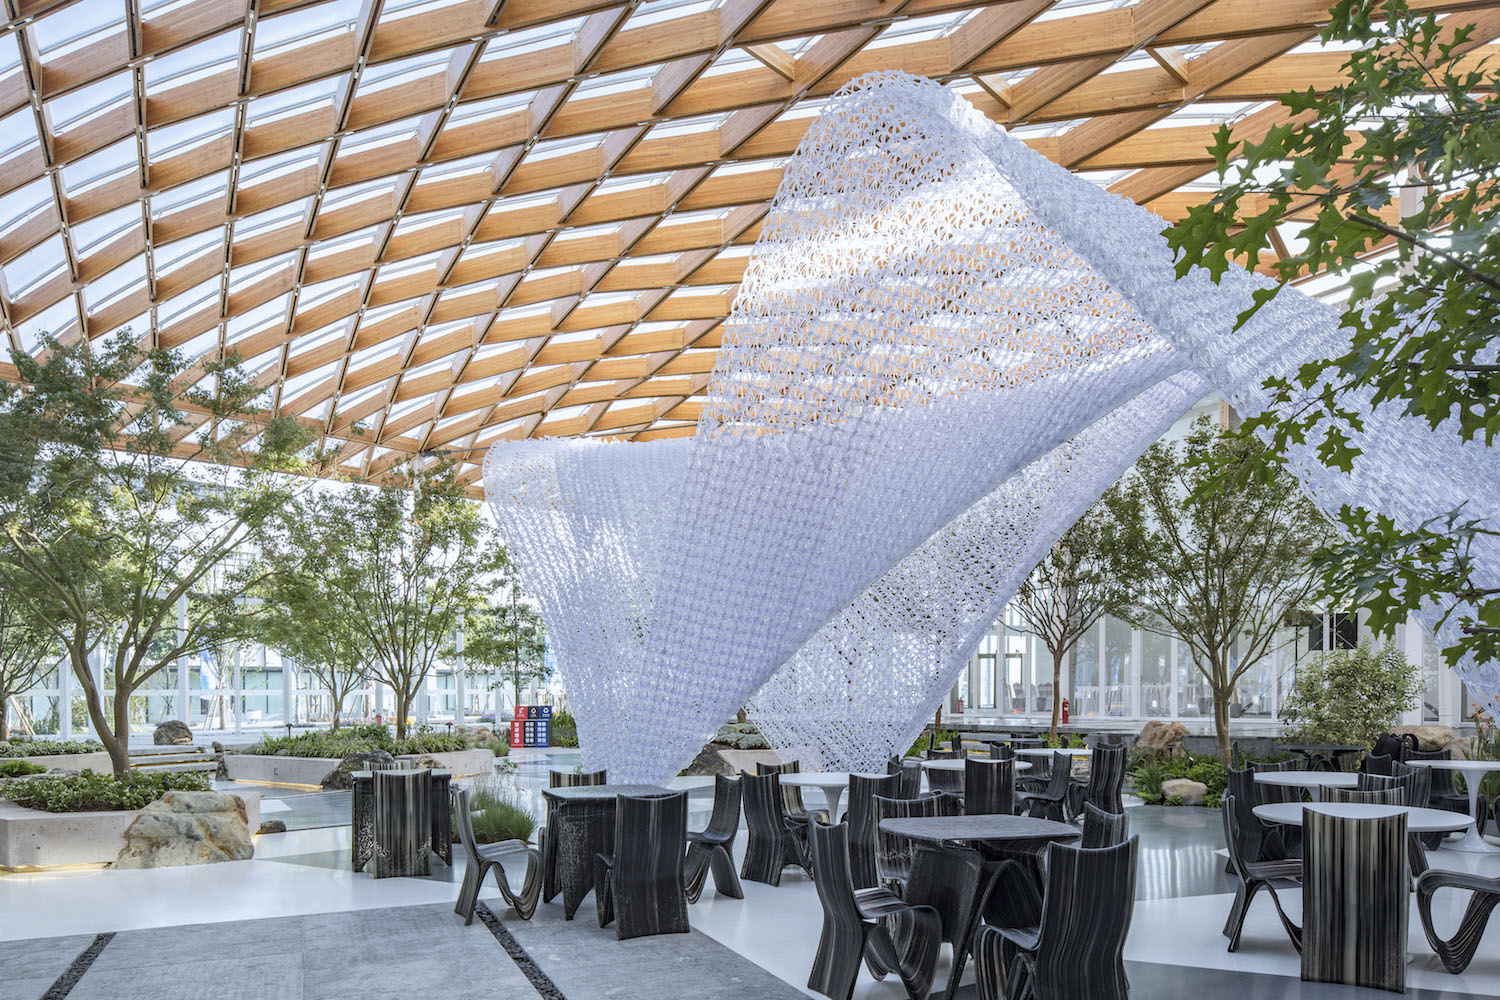 3D Robotic Printed Coffee Pavilion under the timber structure Fangfang Tian